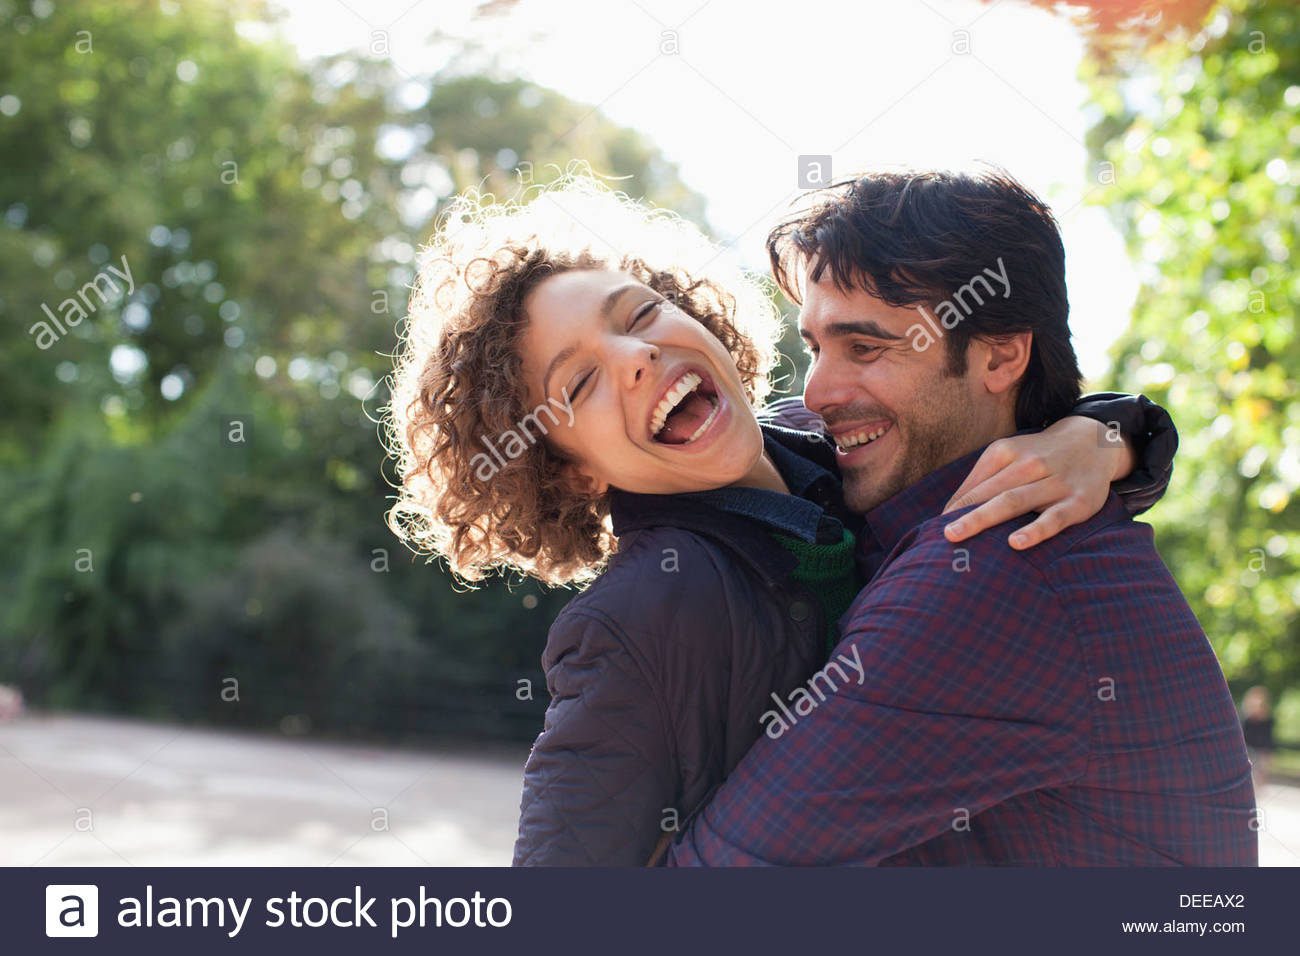 Sun shining behind happy couple hugging - Stock Image